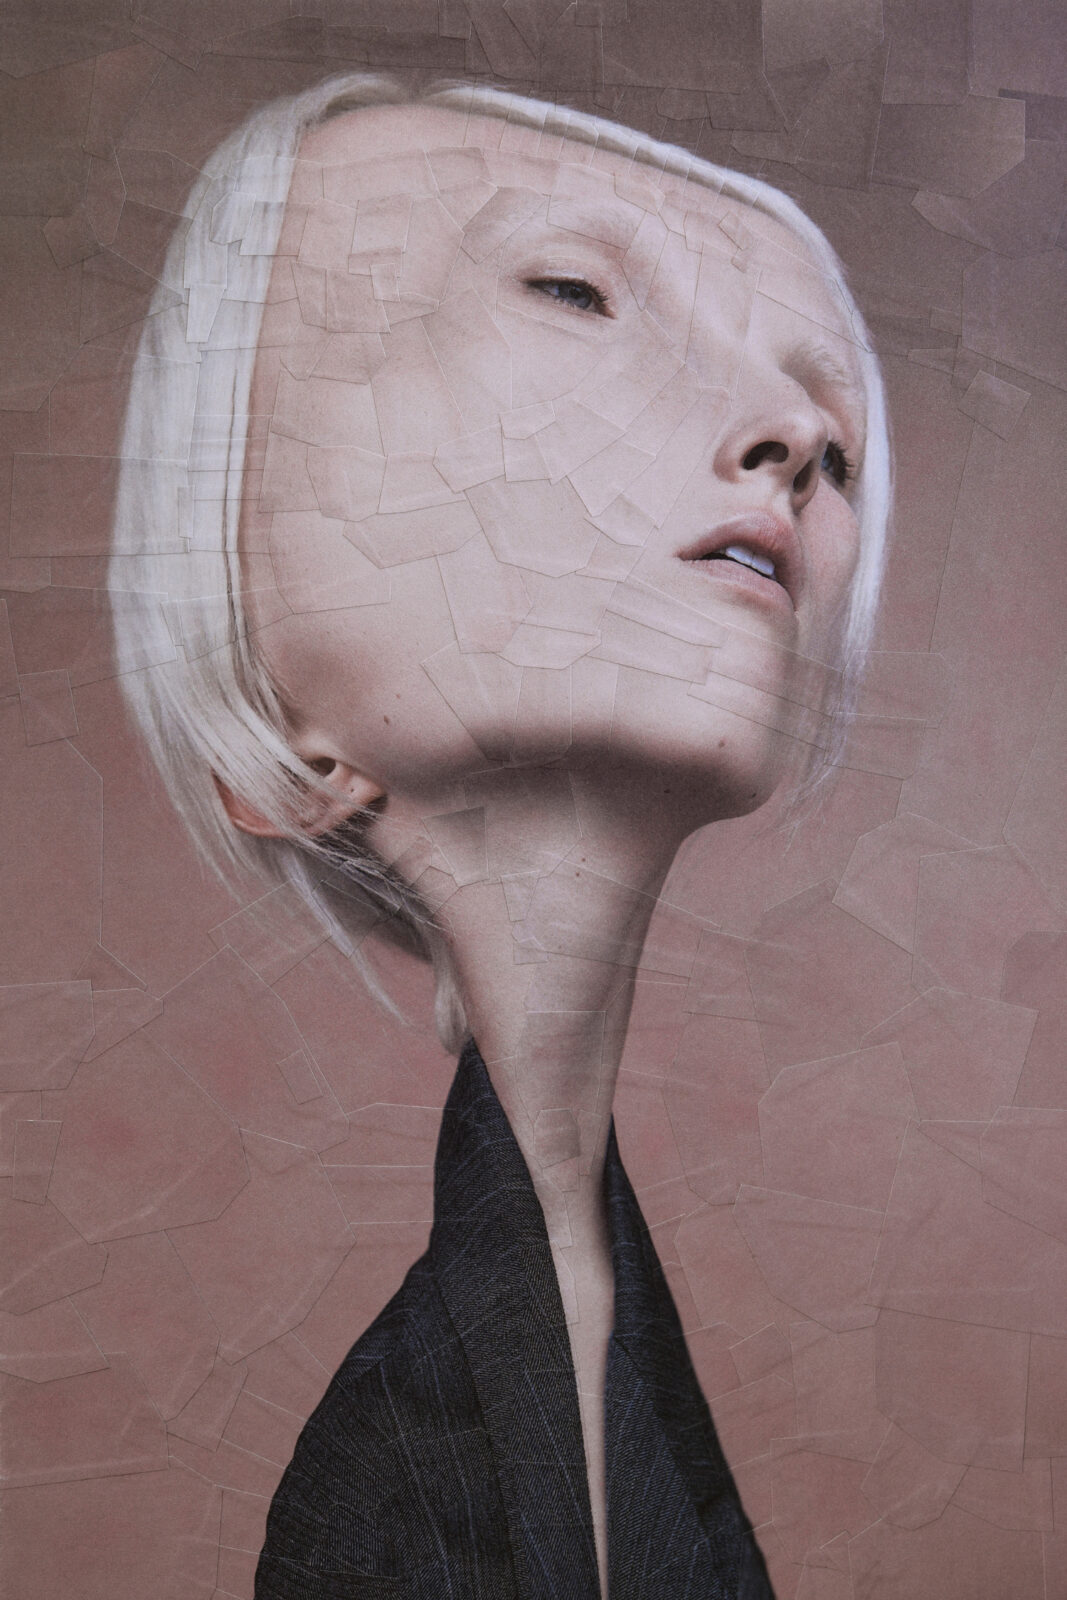 Mesmerizing New Collages by Lola Dupré Distort the Human Form into Gravity-Defying Shapes